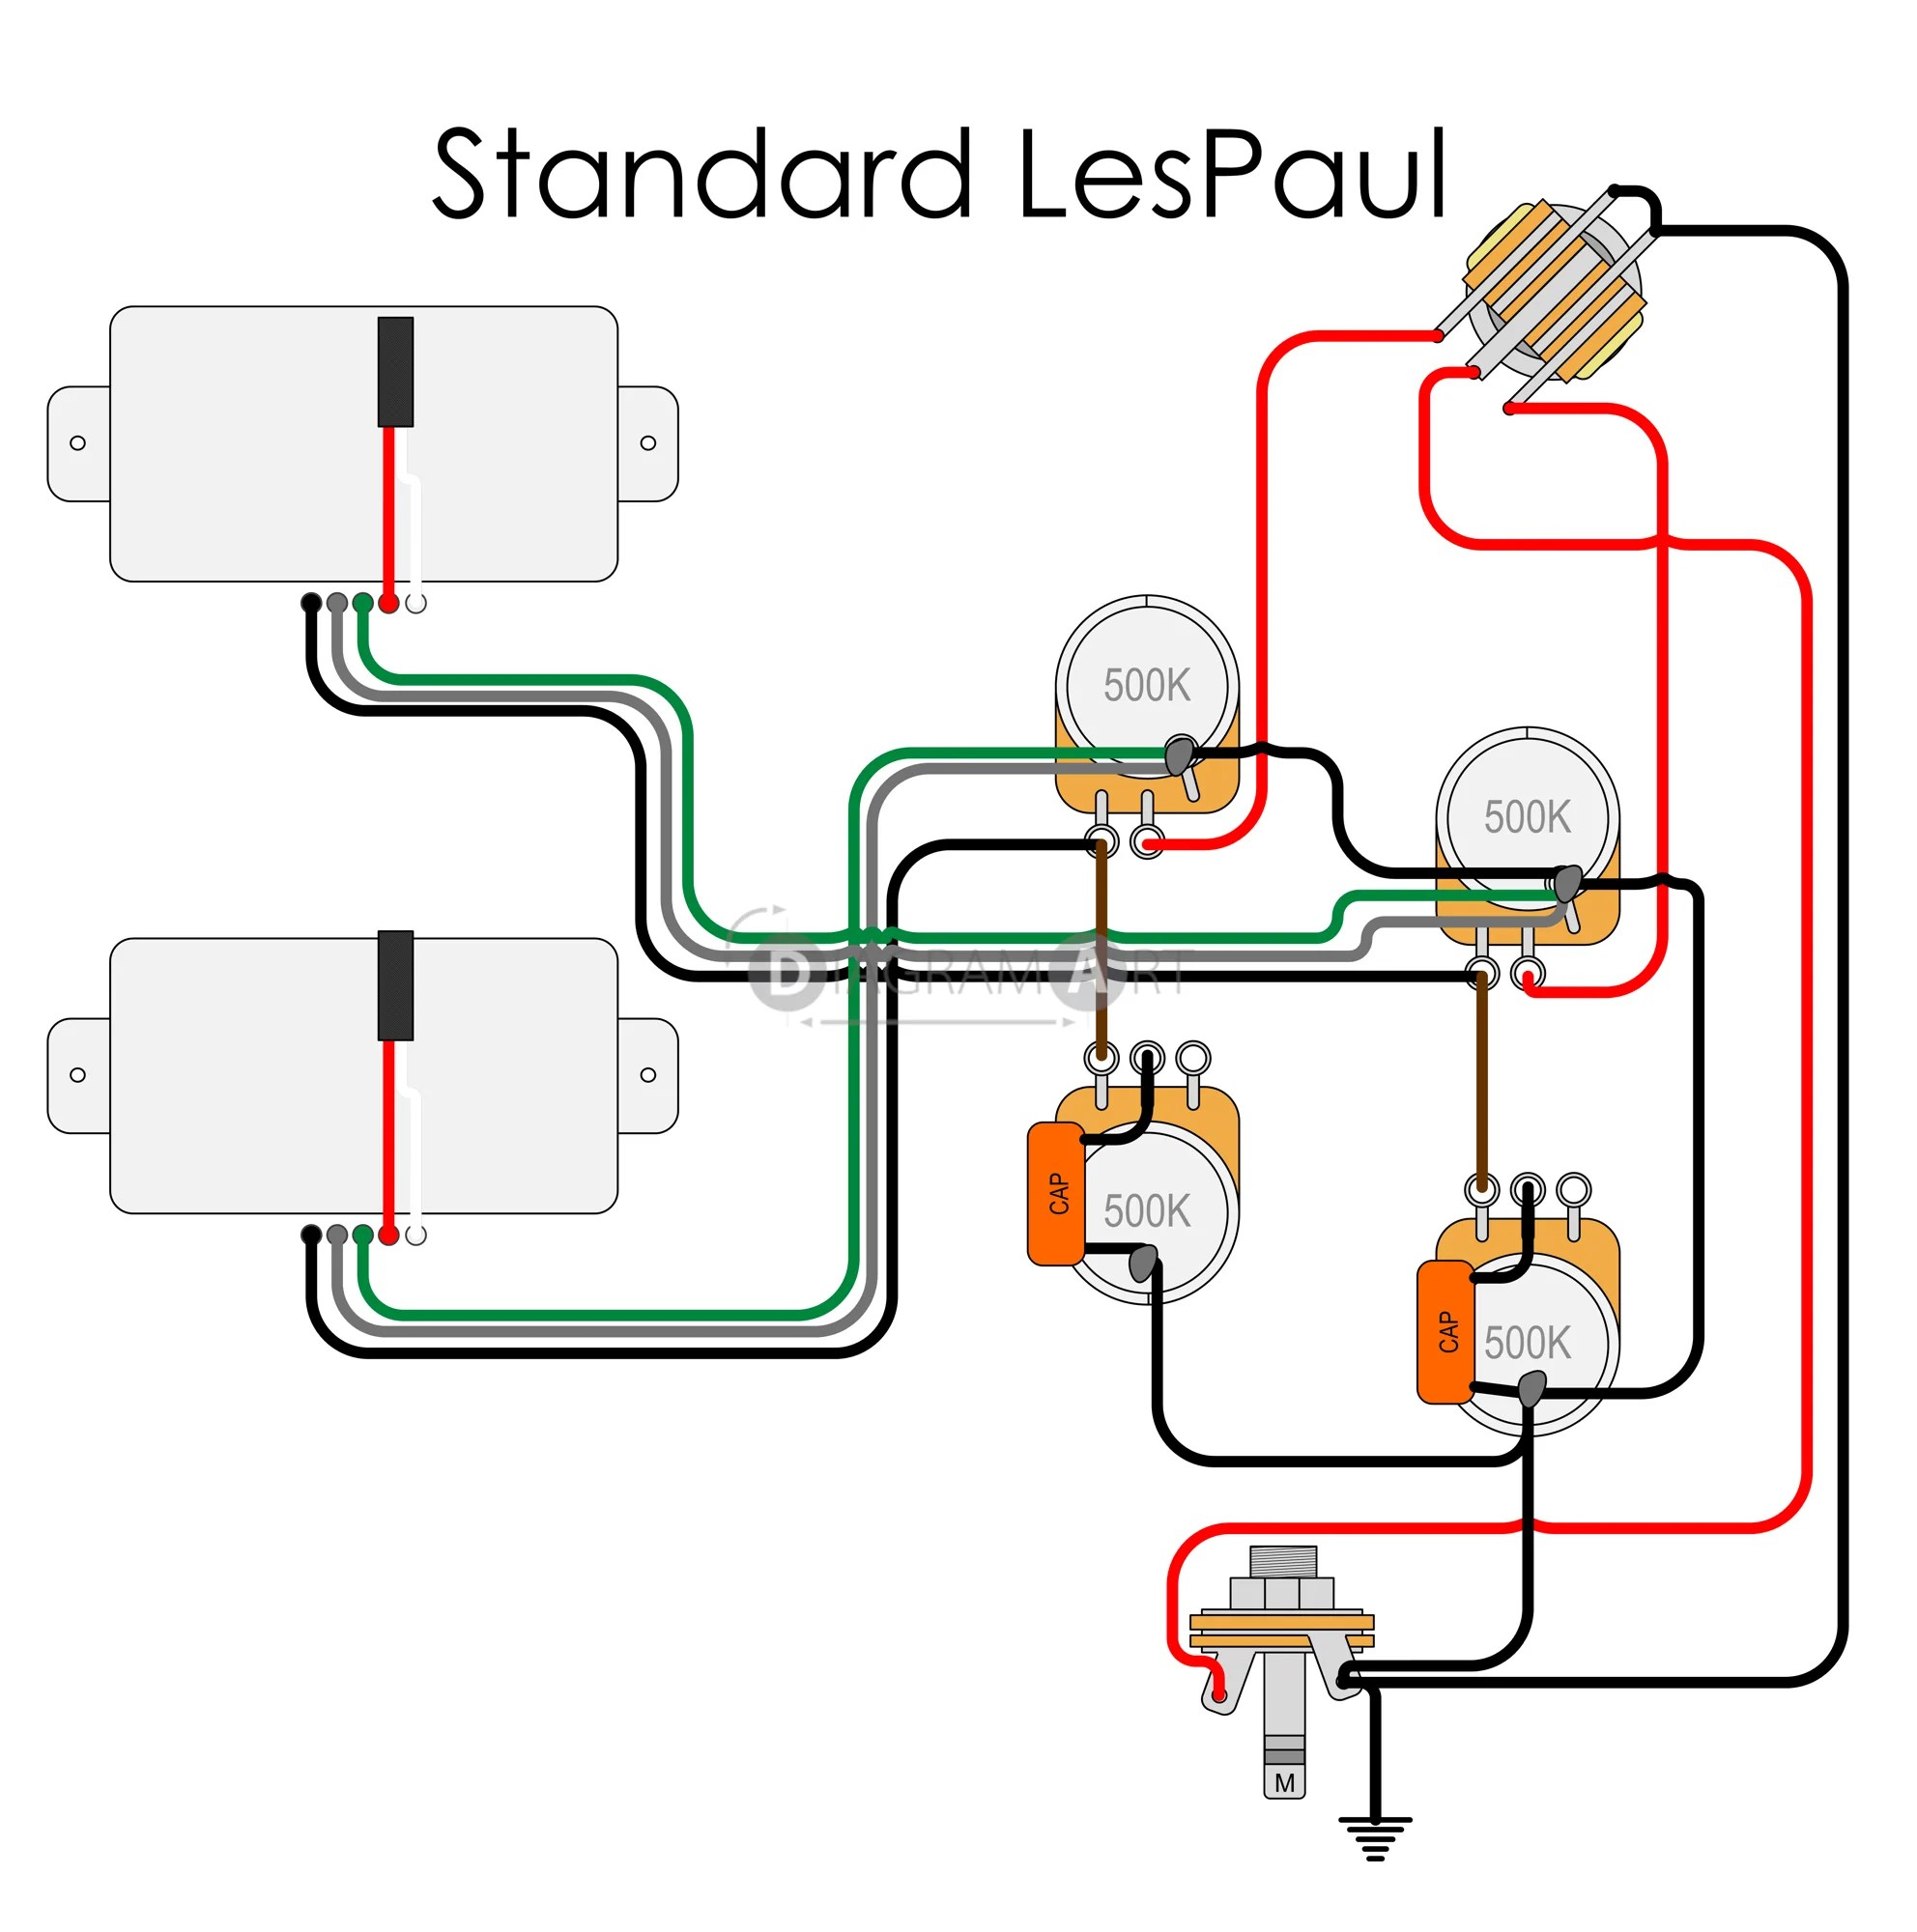 electric guitar wiring standard lespaul electric circuit free sketch diagramart author [ 1984 x 2000 Pixel ]